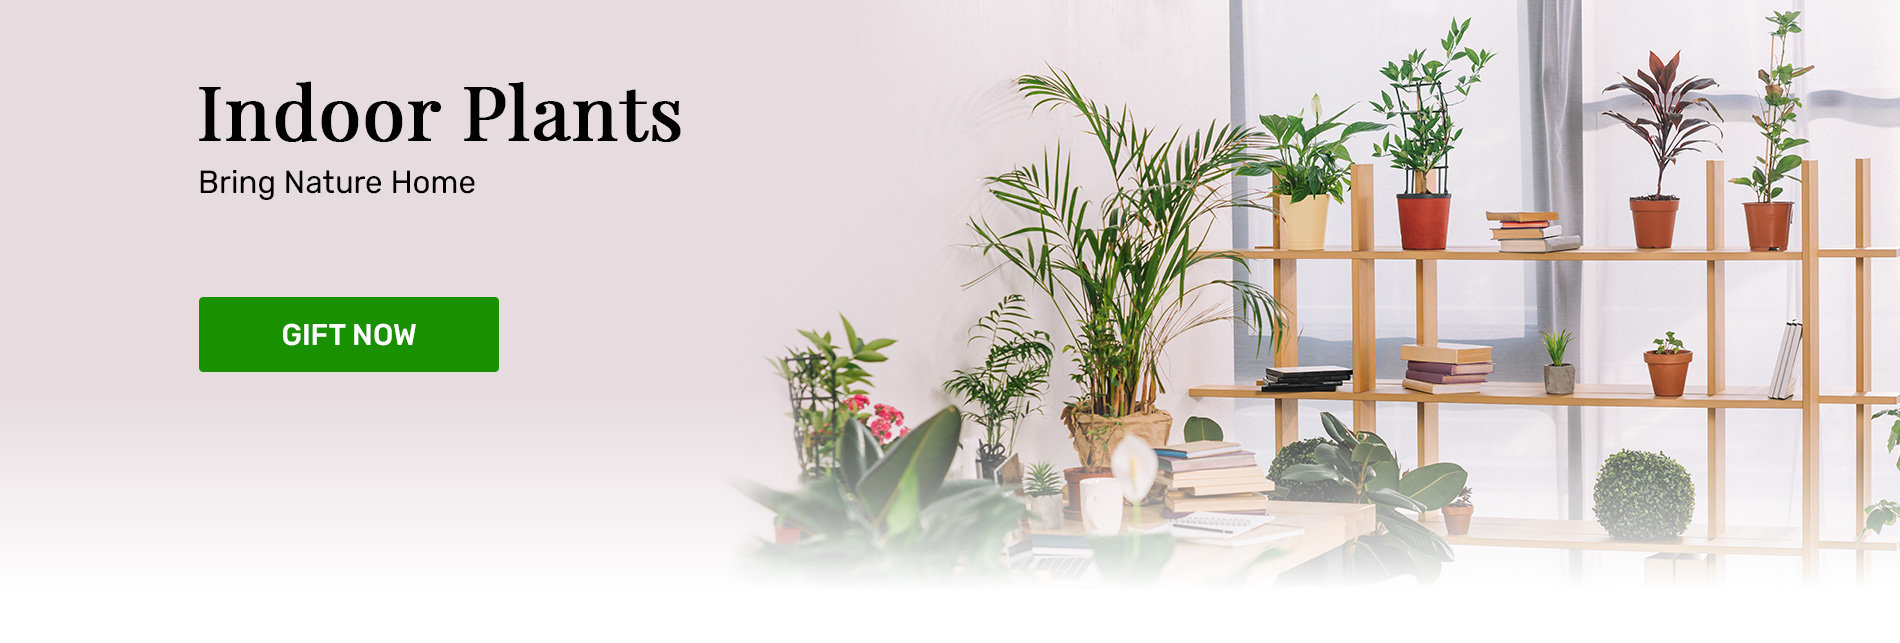 Indoor Plants for Home and Offices